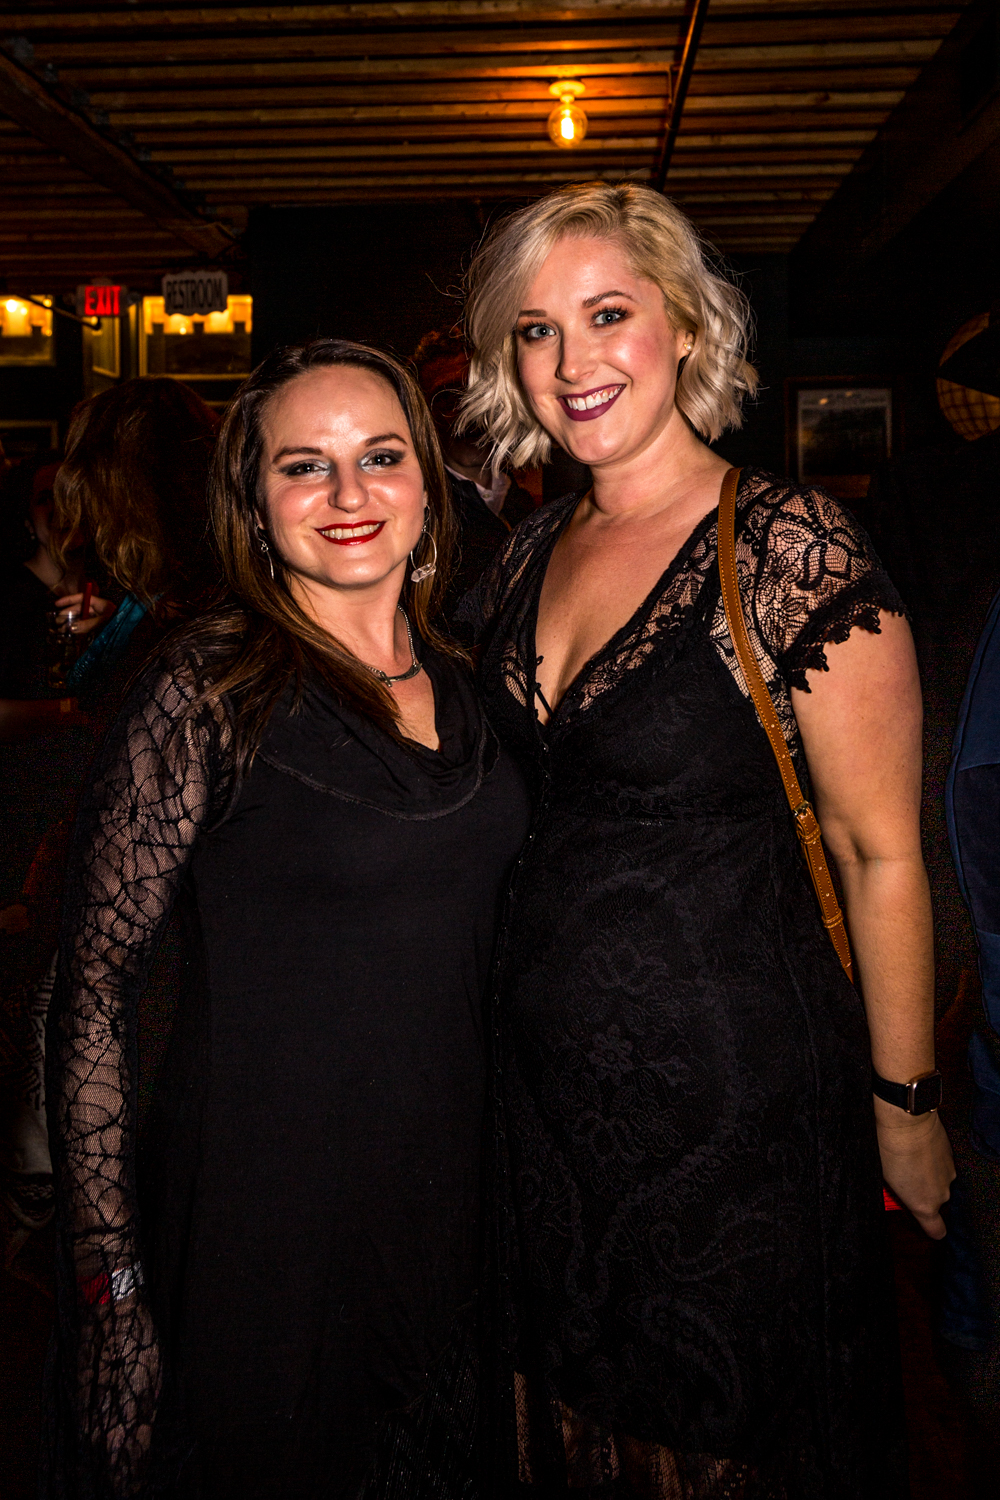 Robyn Holleran and Sarah Stear / Image: Catherine Viox{ }// Published: 10.26.19